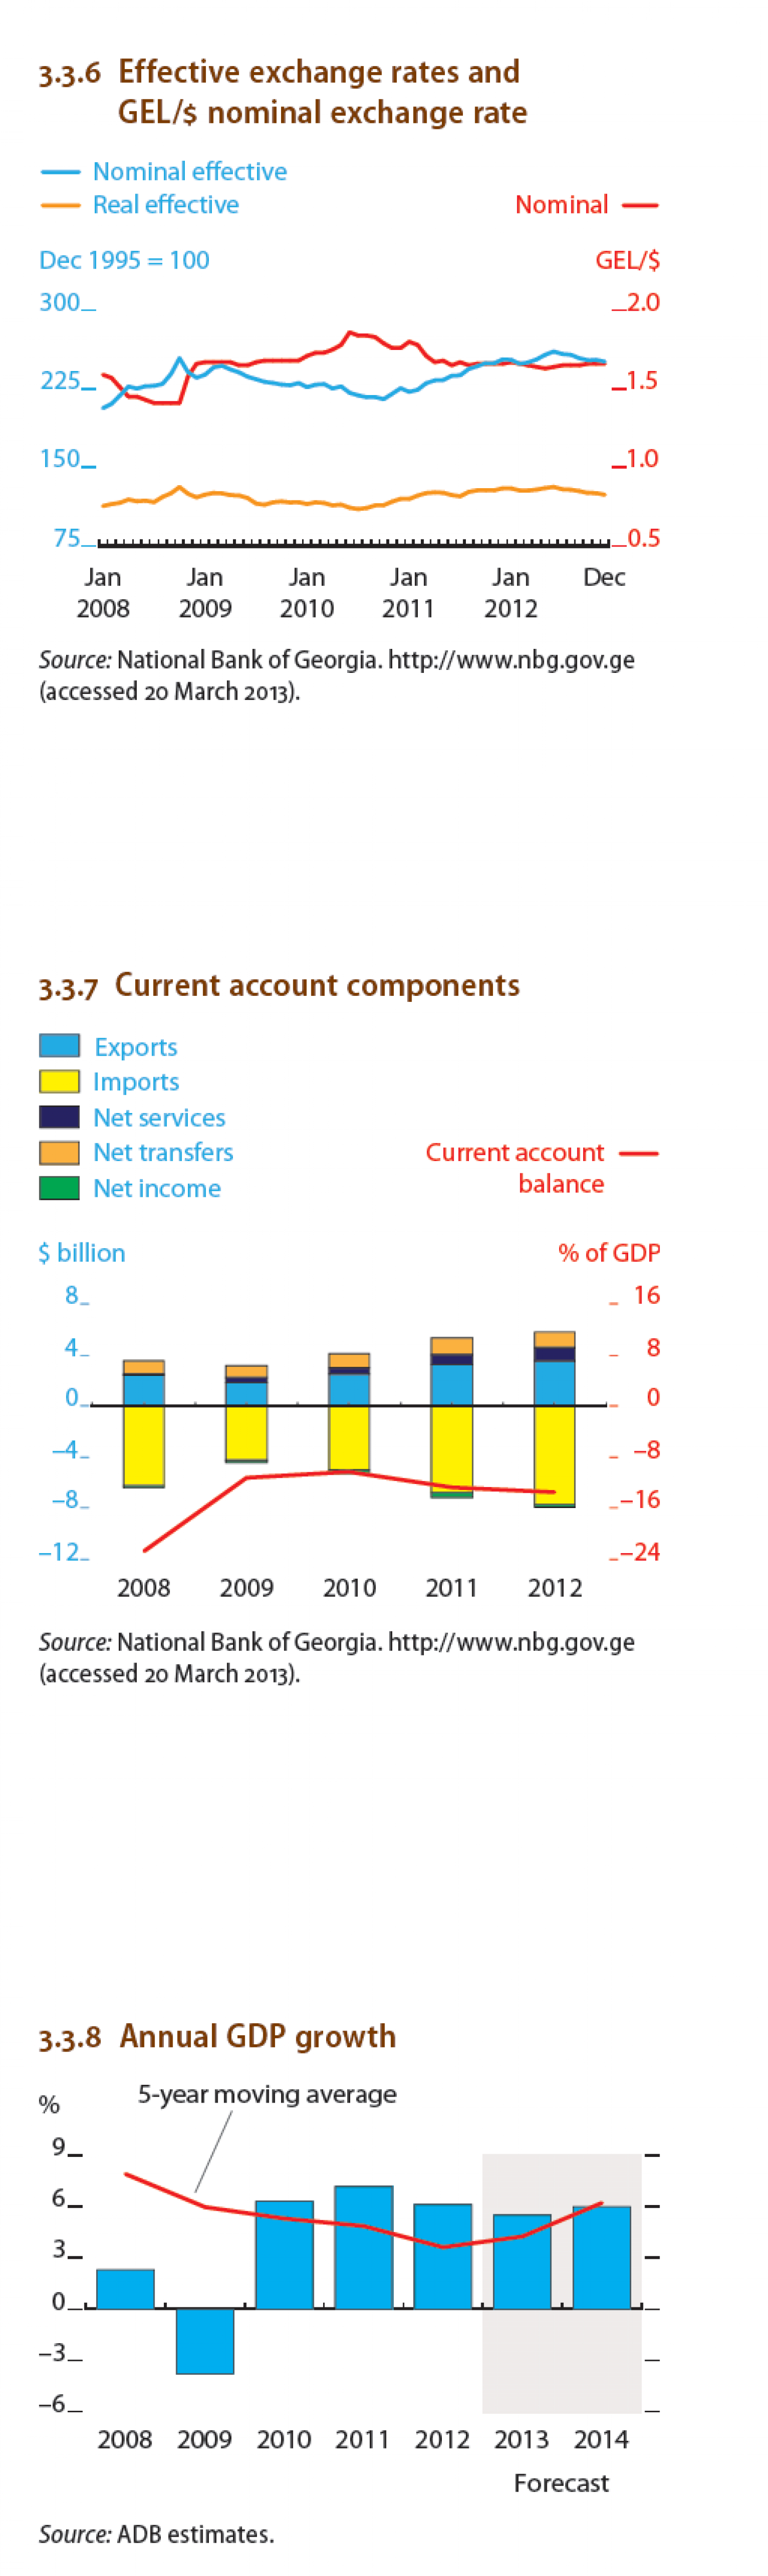 Georgia : Current account conponents Infographic